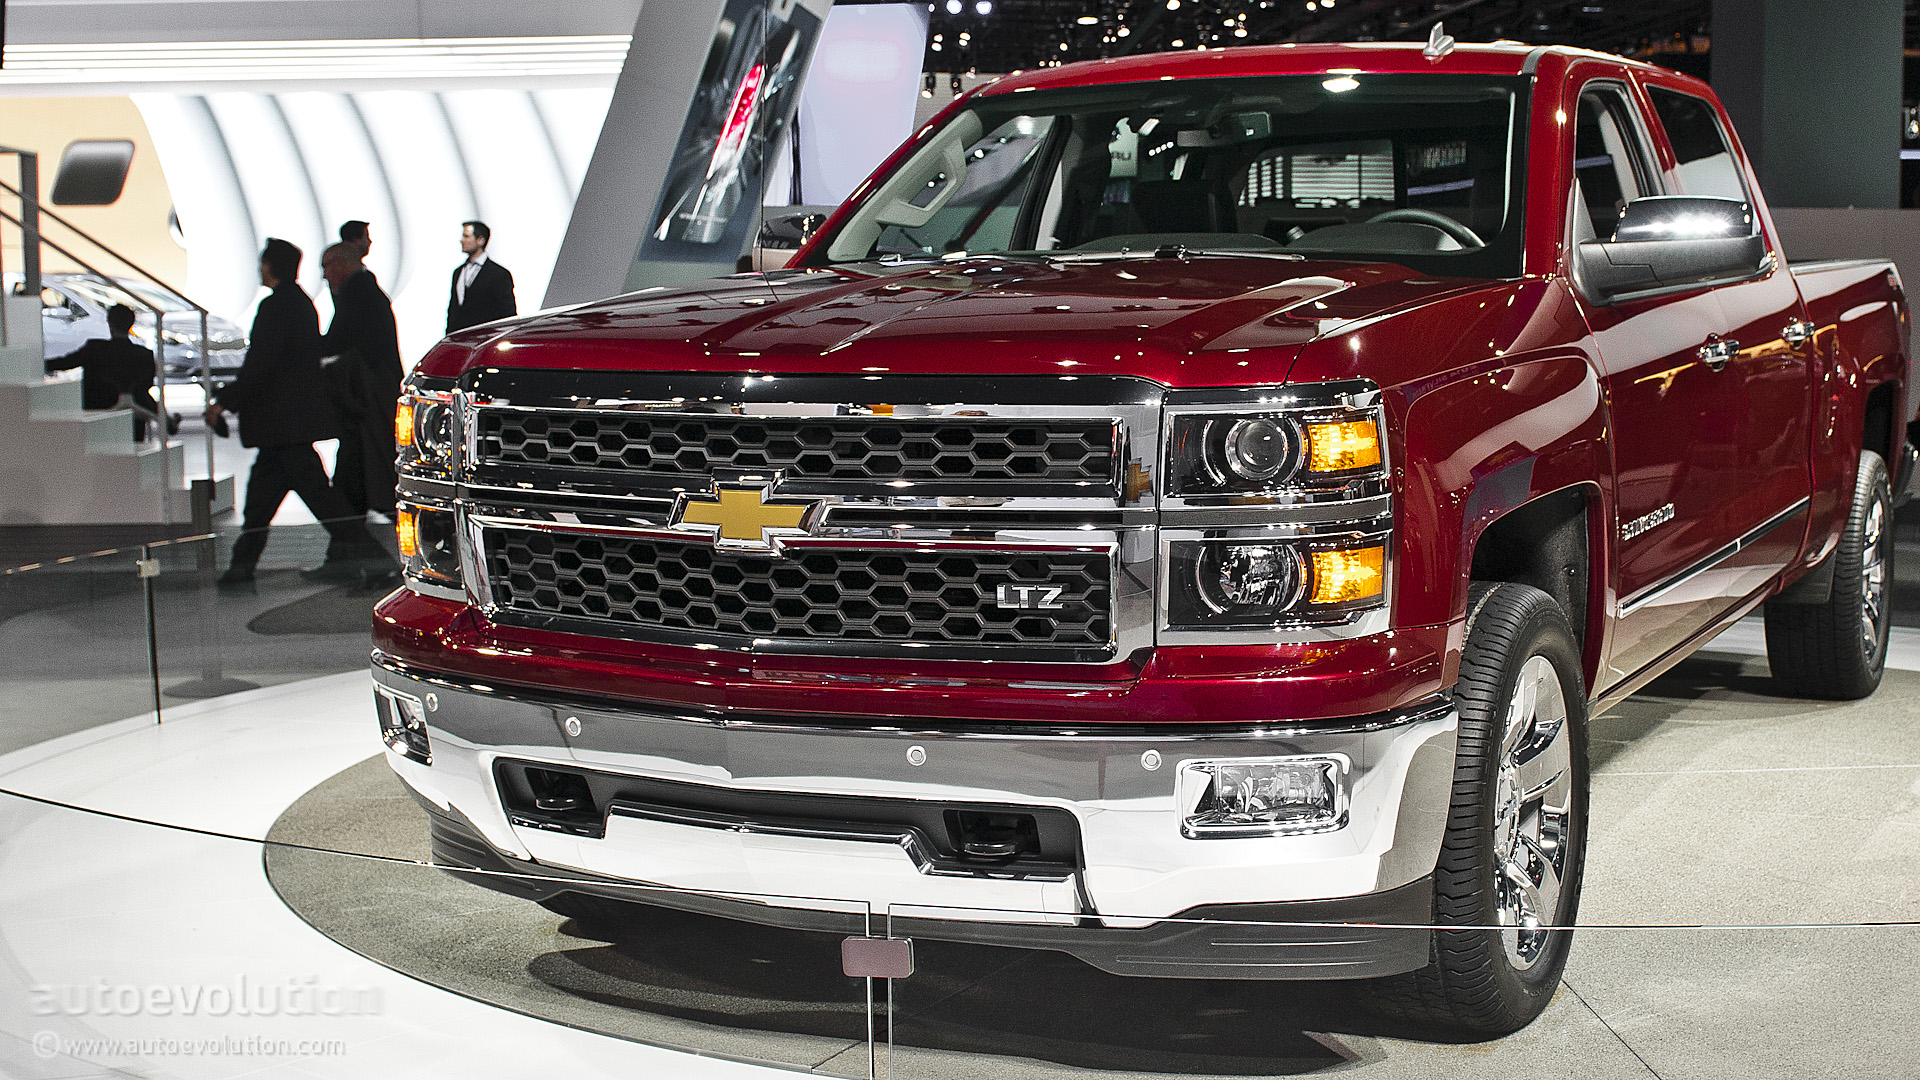 2014 Silverado Uses High Strength Steel For Added Durability Gm 4 3l Engine Chevy